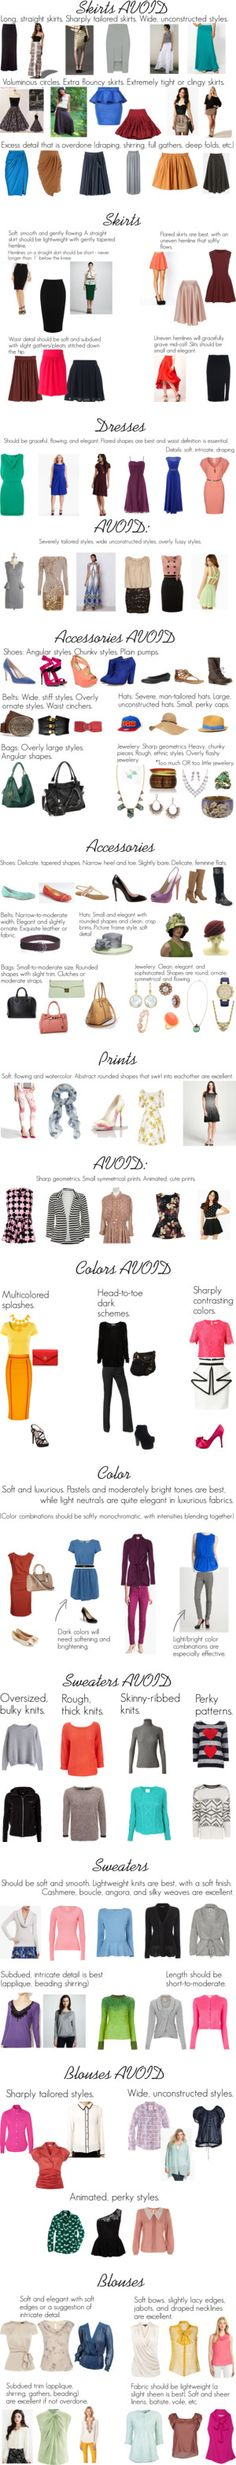 """""""SC Guidelines"""" by oscillate on Polyvore"""